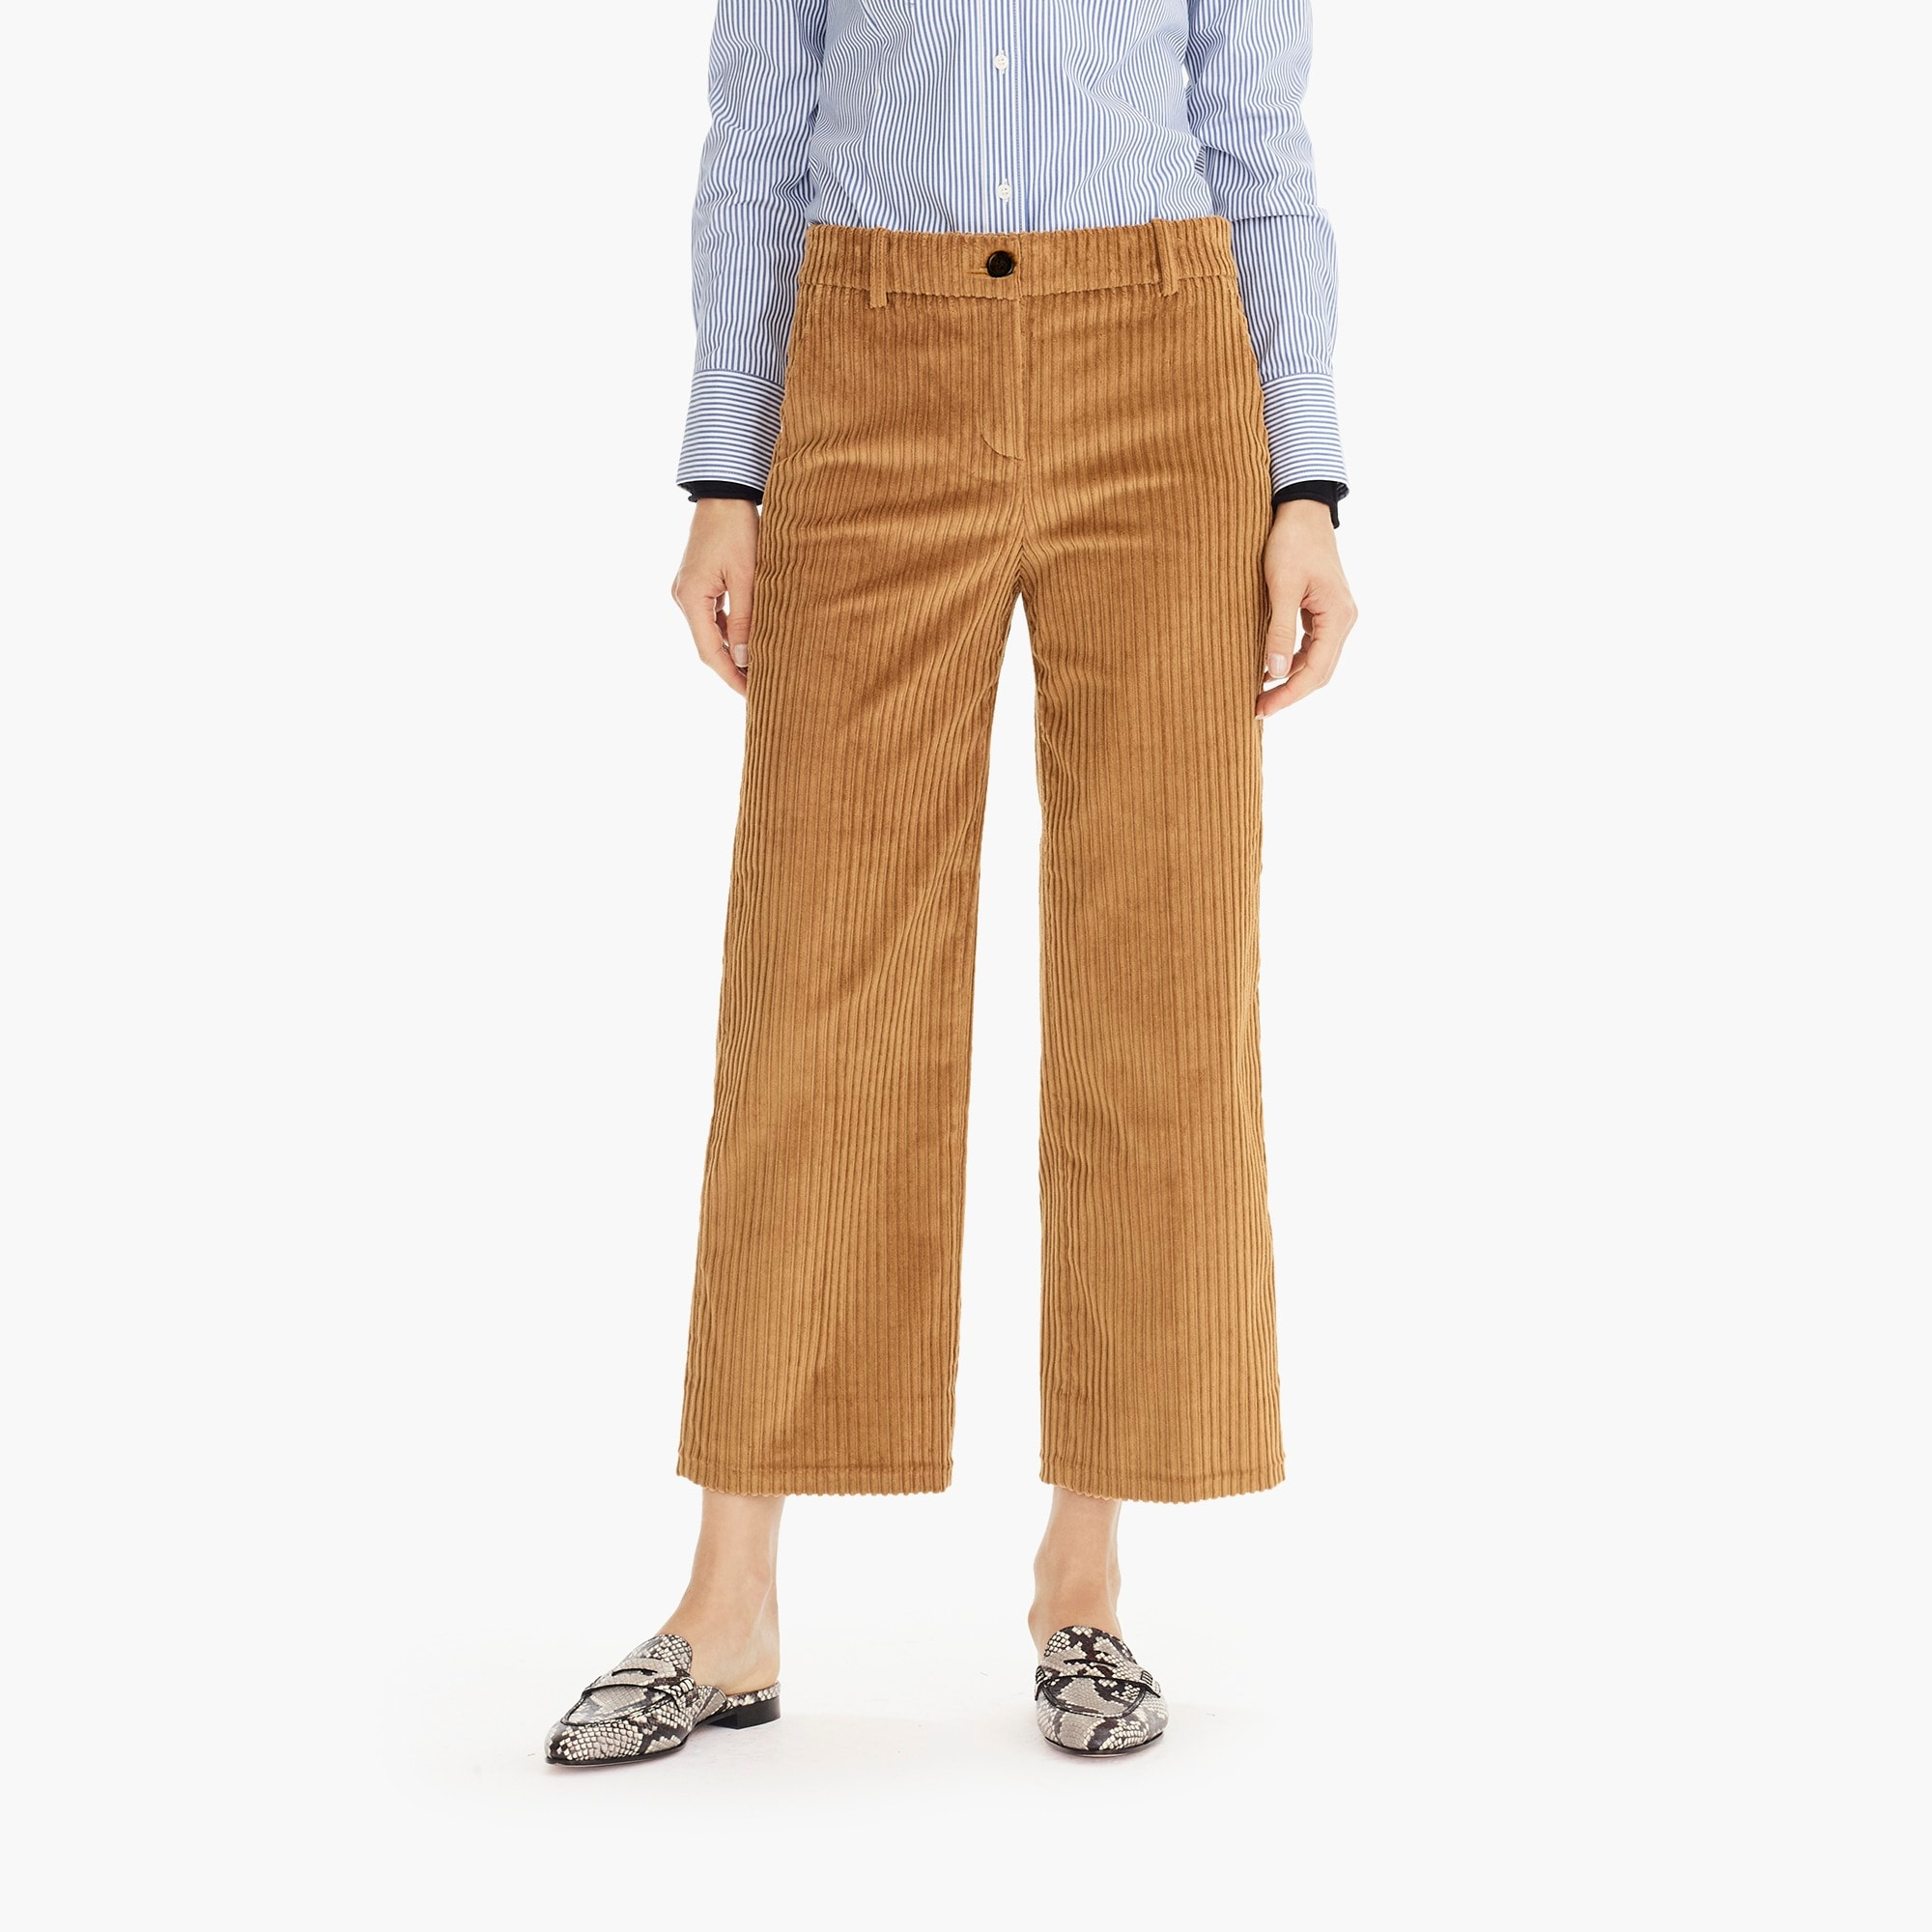 Image 3 for Wide-leg cropped pant in corduroy